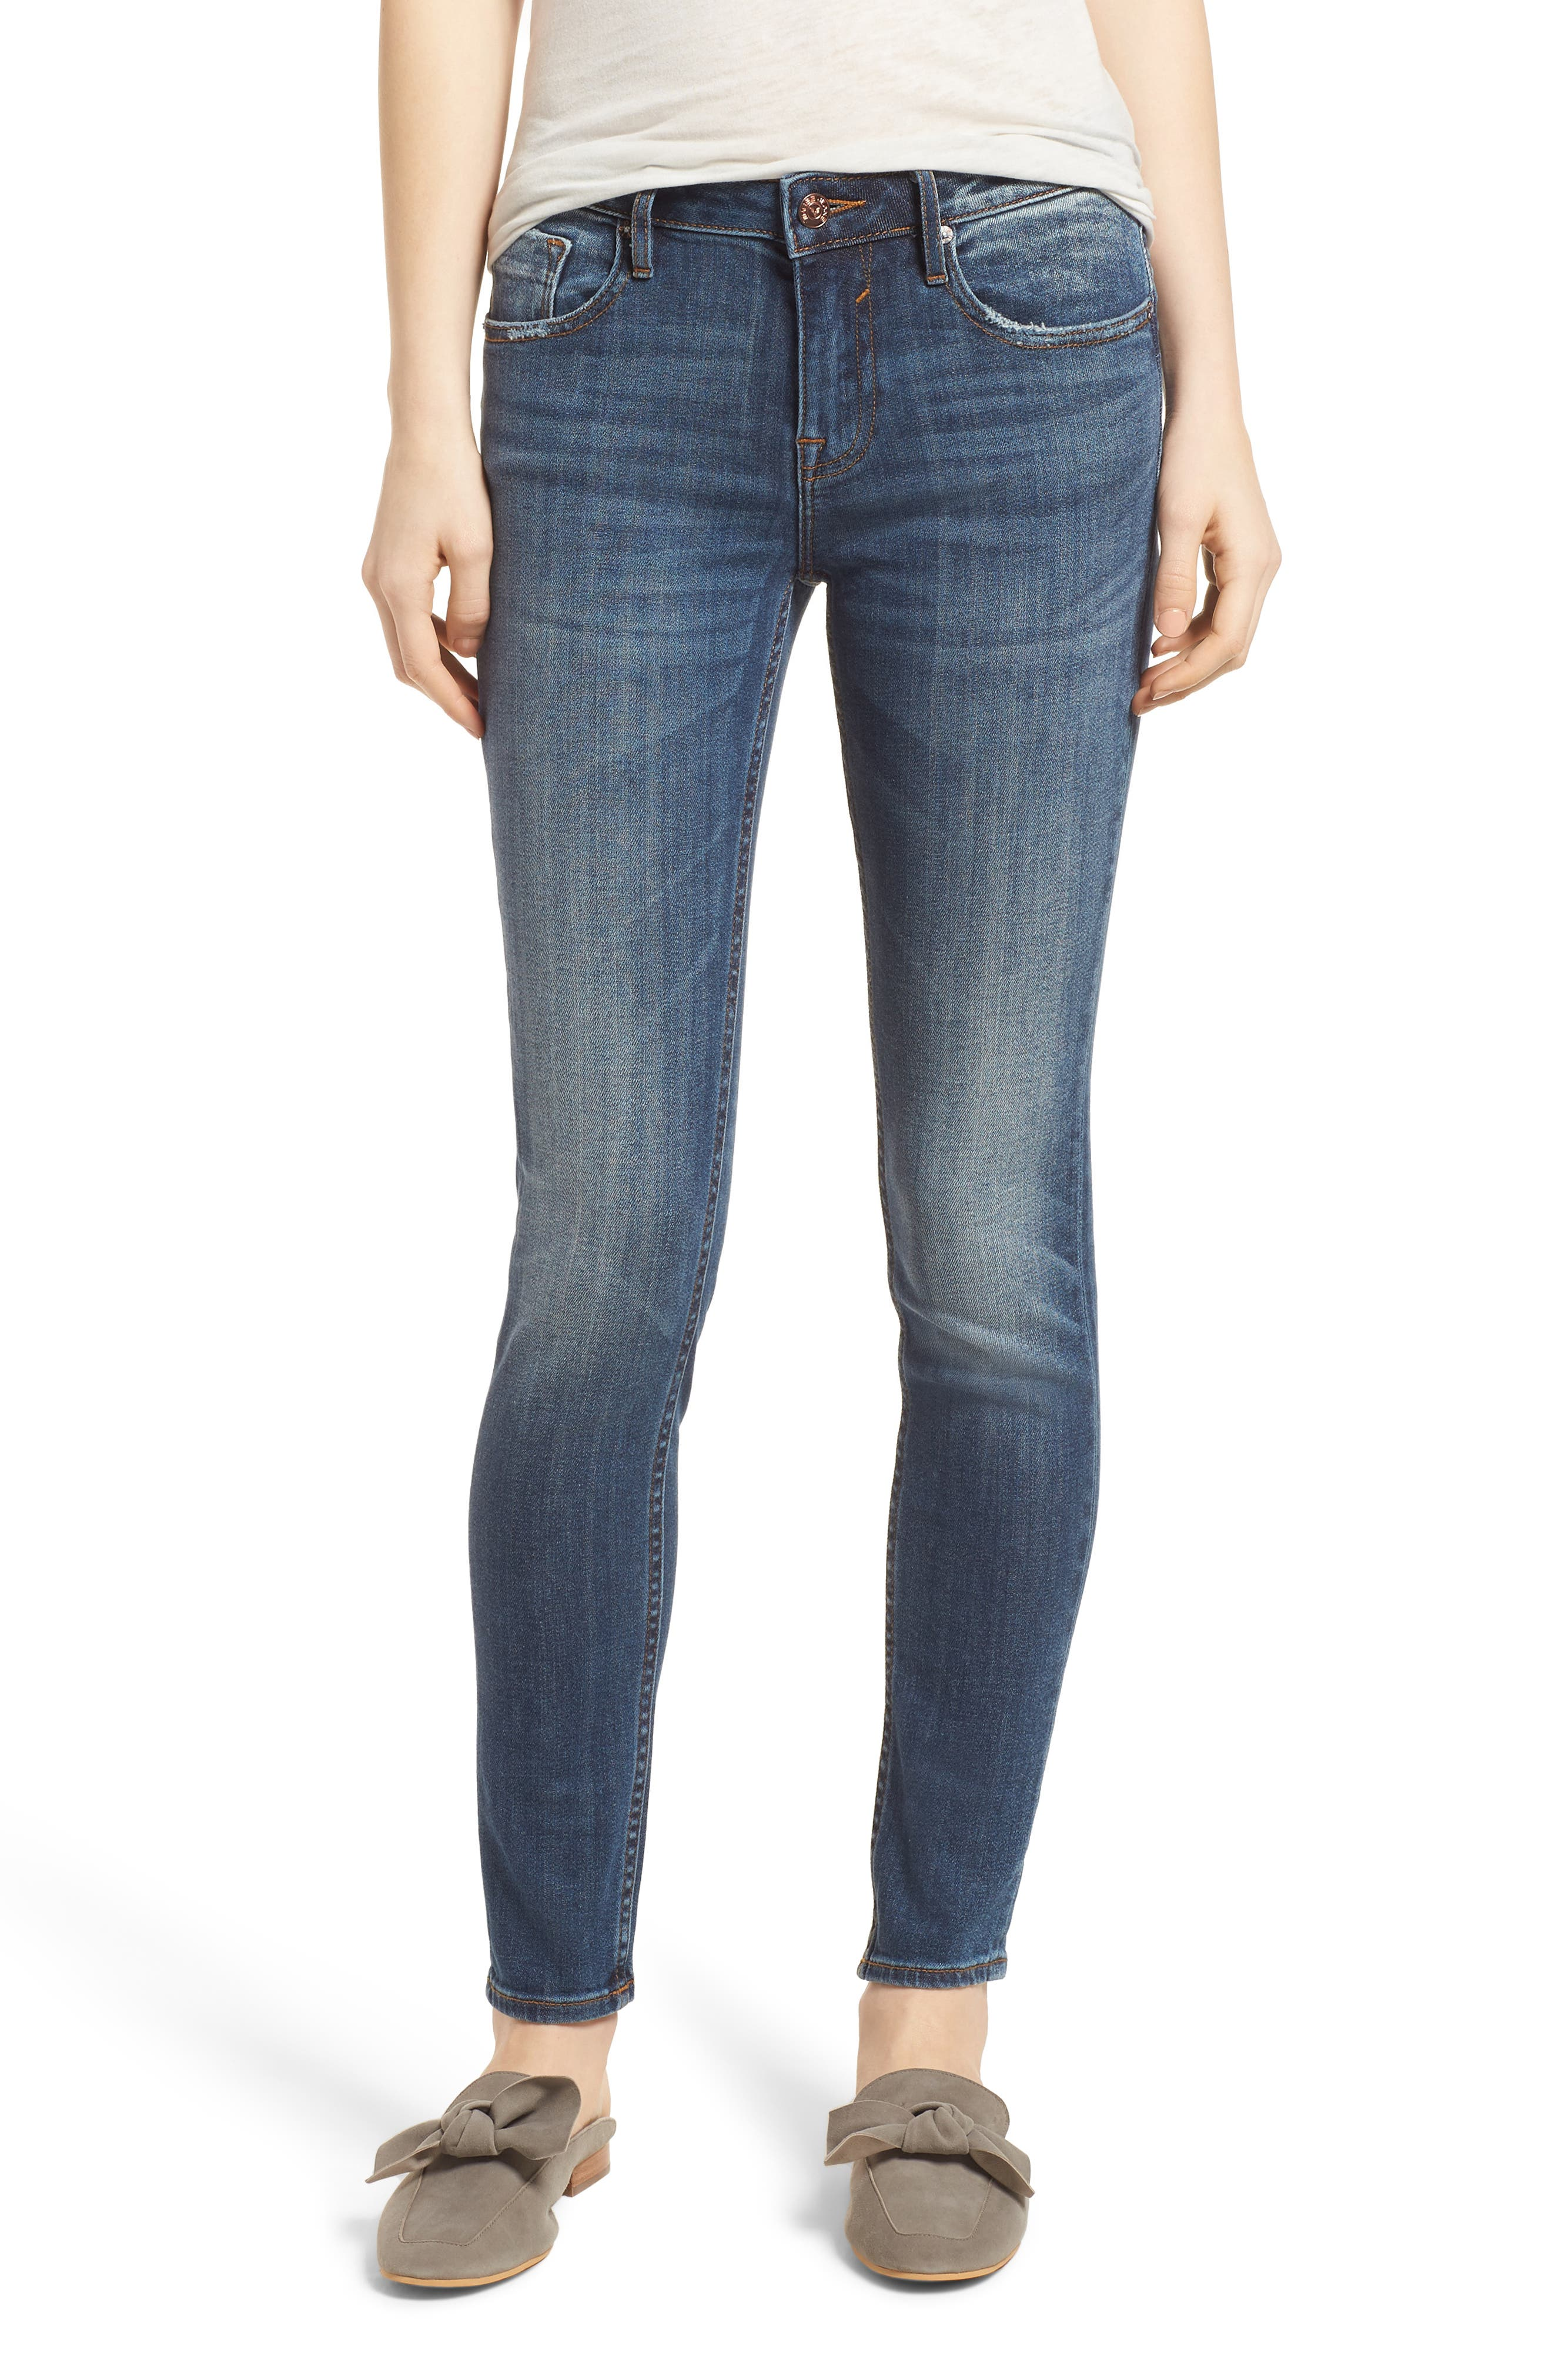 Jagger Skinny Jeans,                         Main,                         color, 420